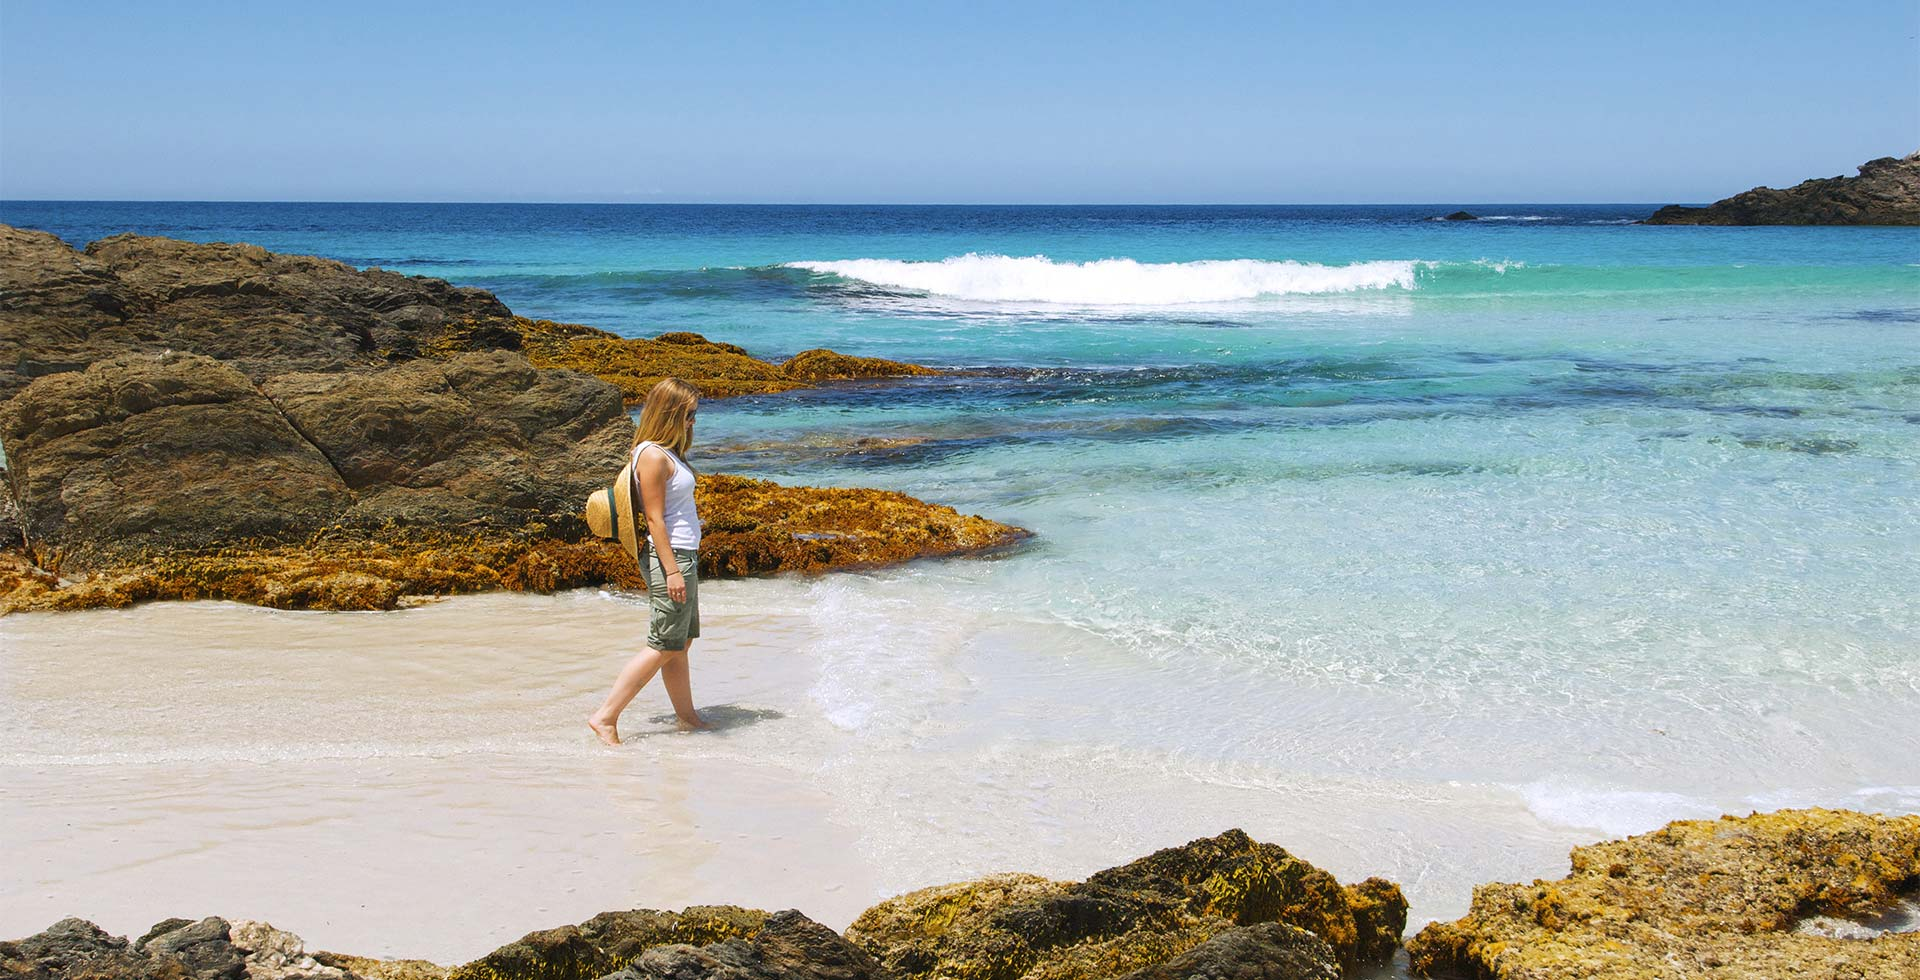 Dip your toes in the ocean at Quoin Head Beach only in Esperance